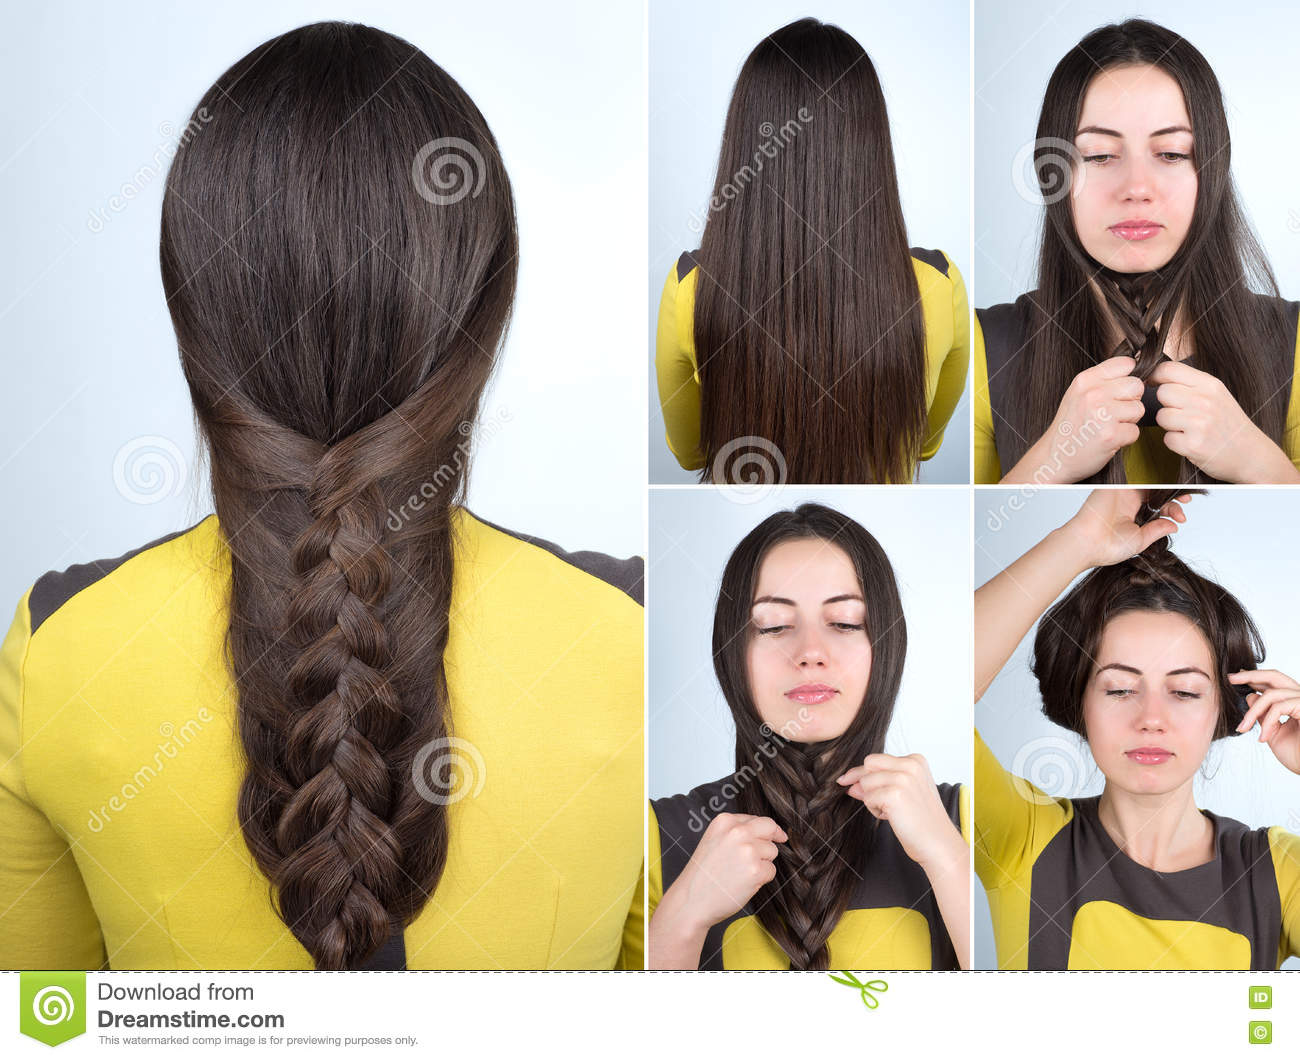 Easy Braid Hairstyle Tutorial